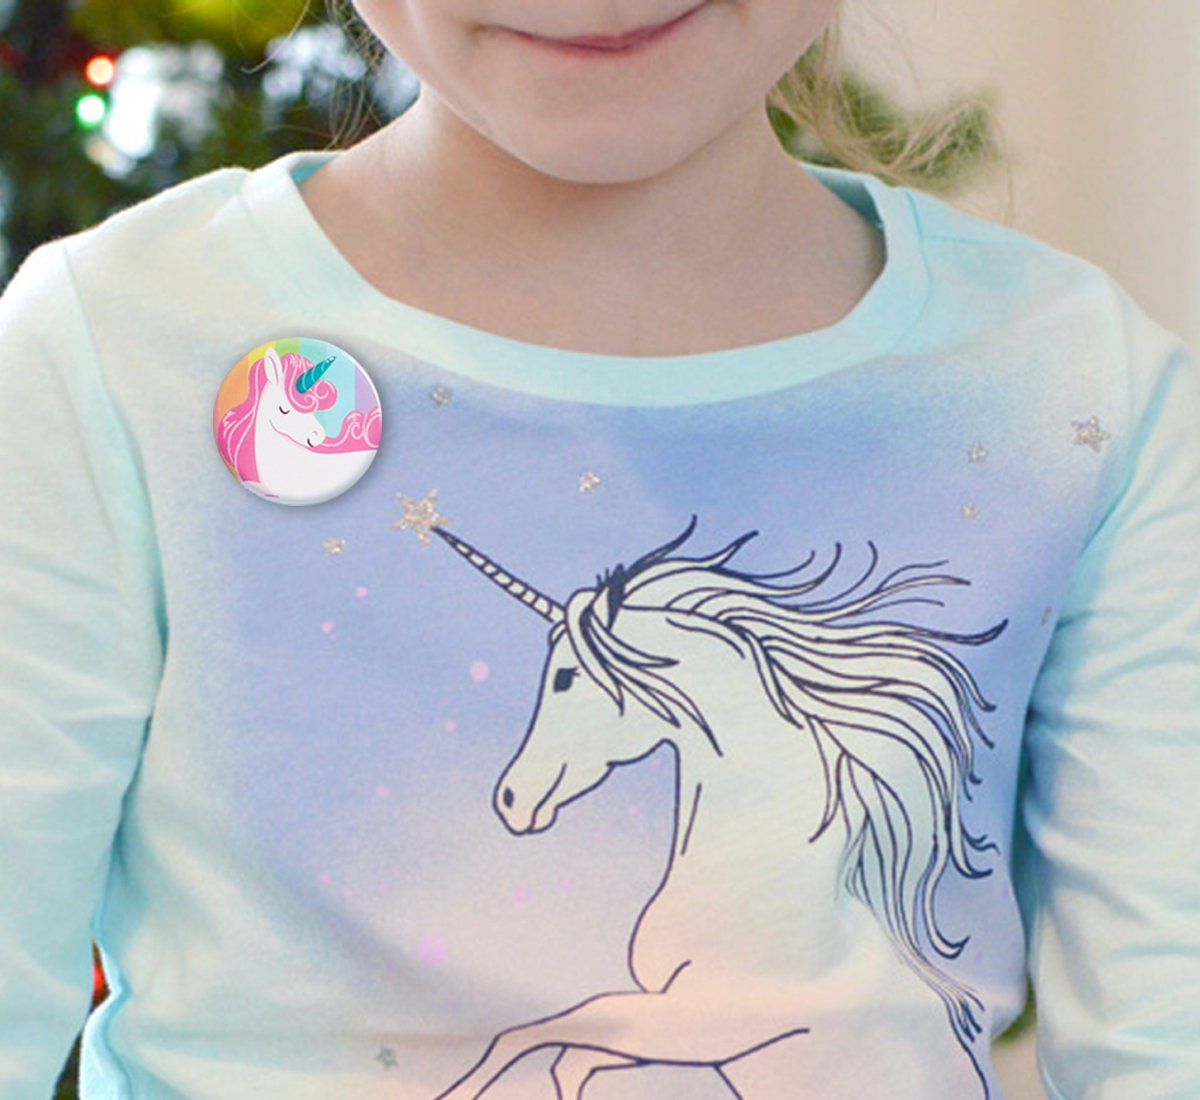 Geefuun Unicorn Pins Valentine's Day/Birthday Party Favors Decorations Girl Gift Badges Magical Rainbow Cards Supplies 8